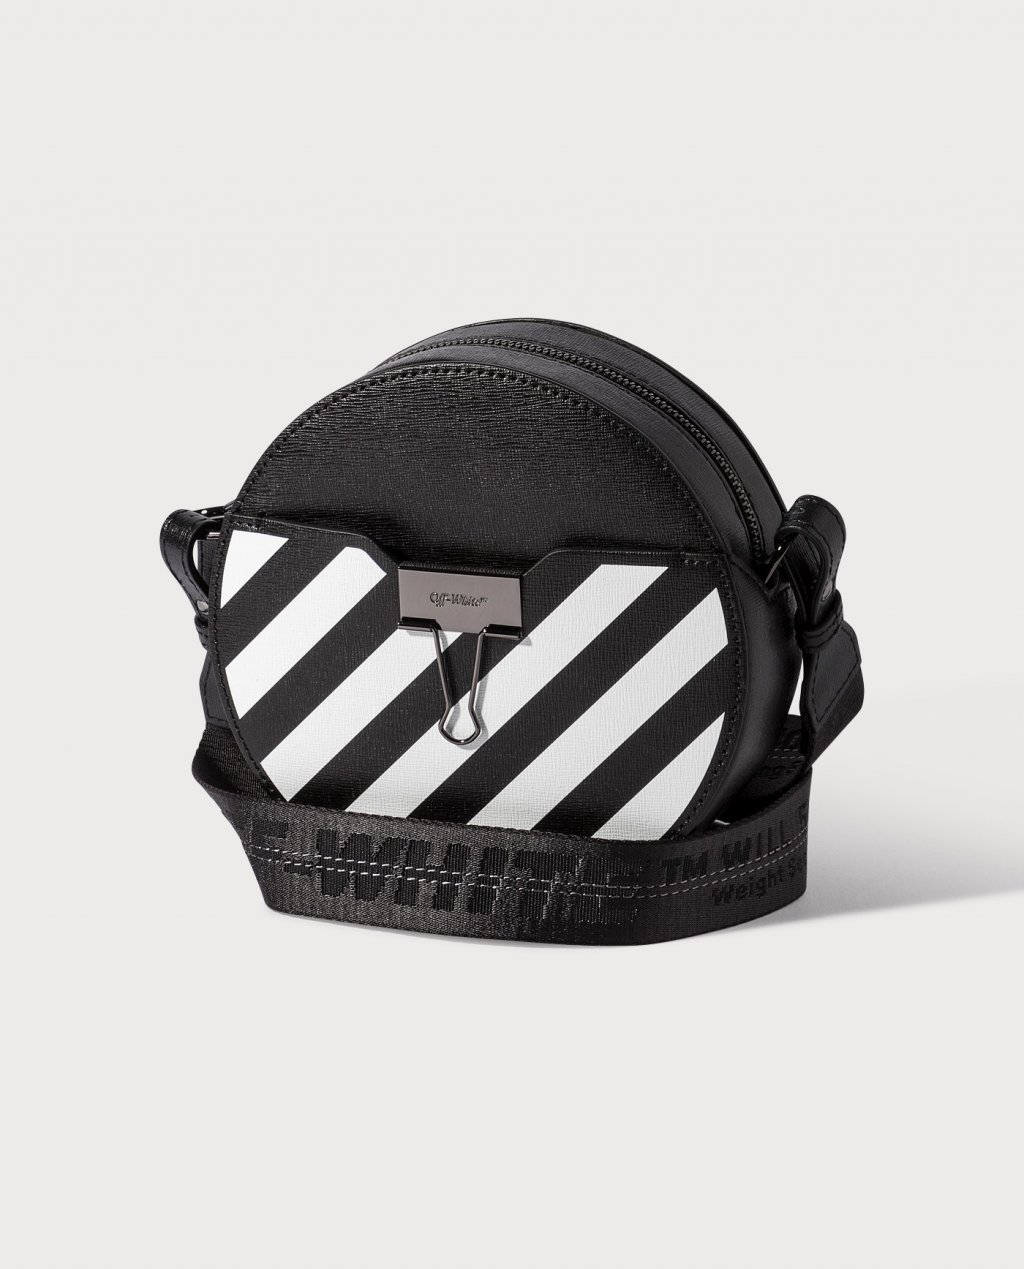 Off-White Diag Round Bag